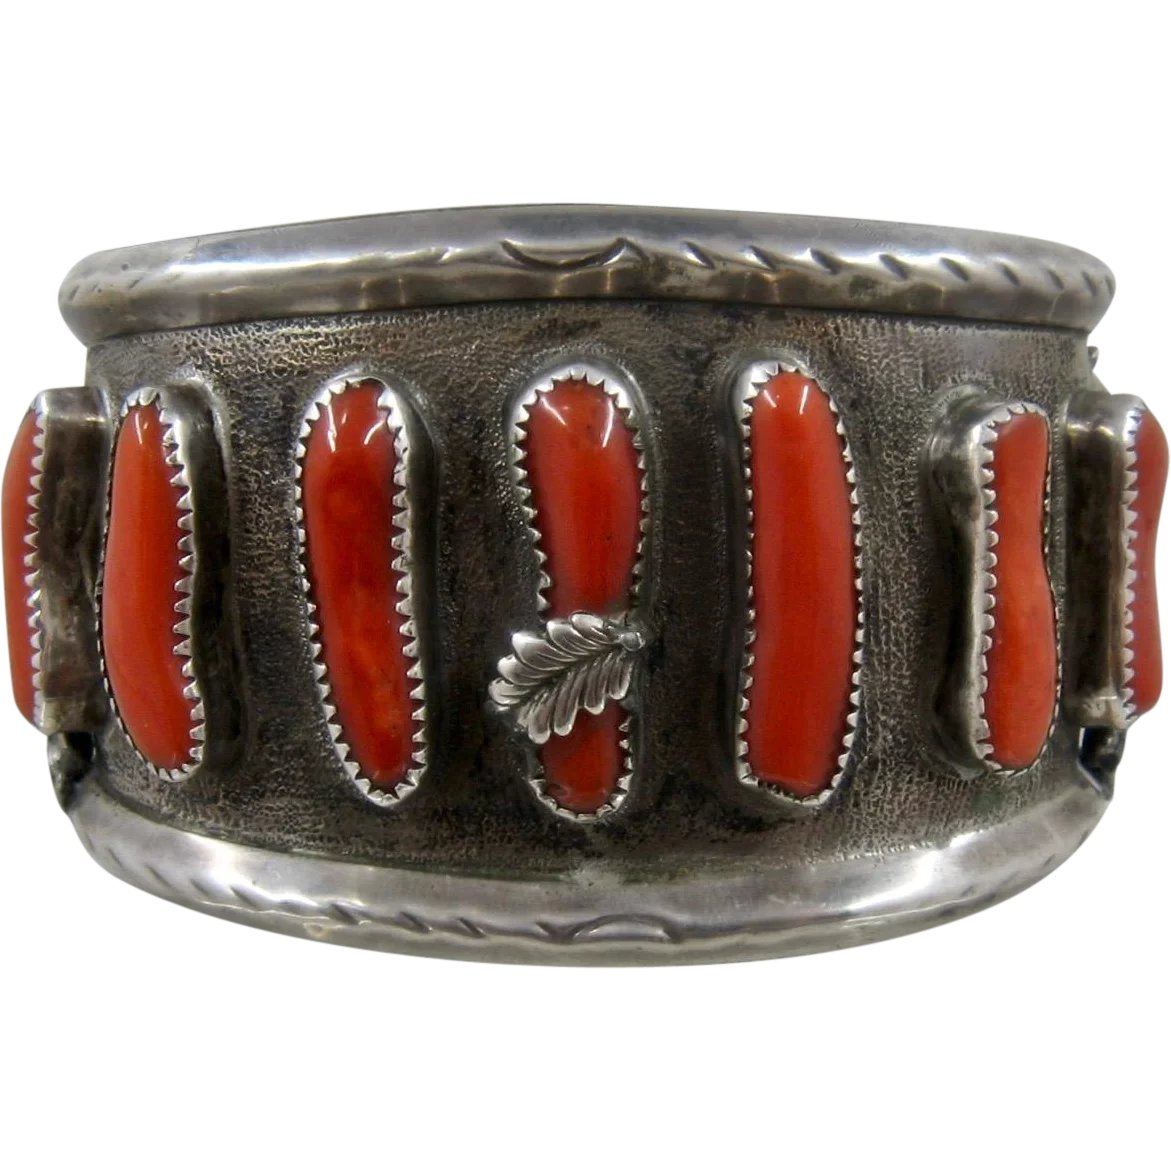 1970 BAYANIHAN sterling LINK 7 14 BRACELET Collectible Modernist designer ca heavy chunky recognizable quality vintage. 1  wide